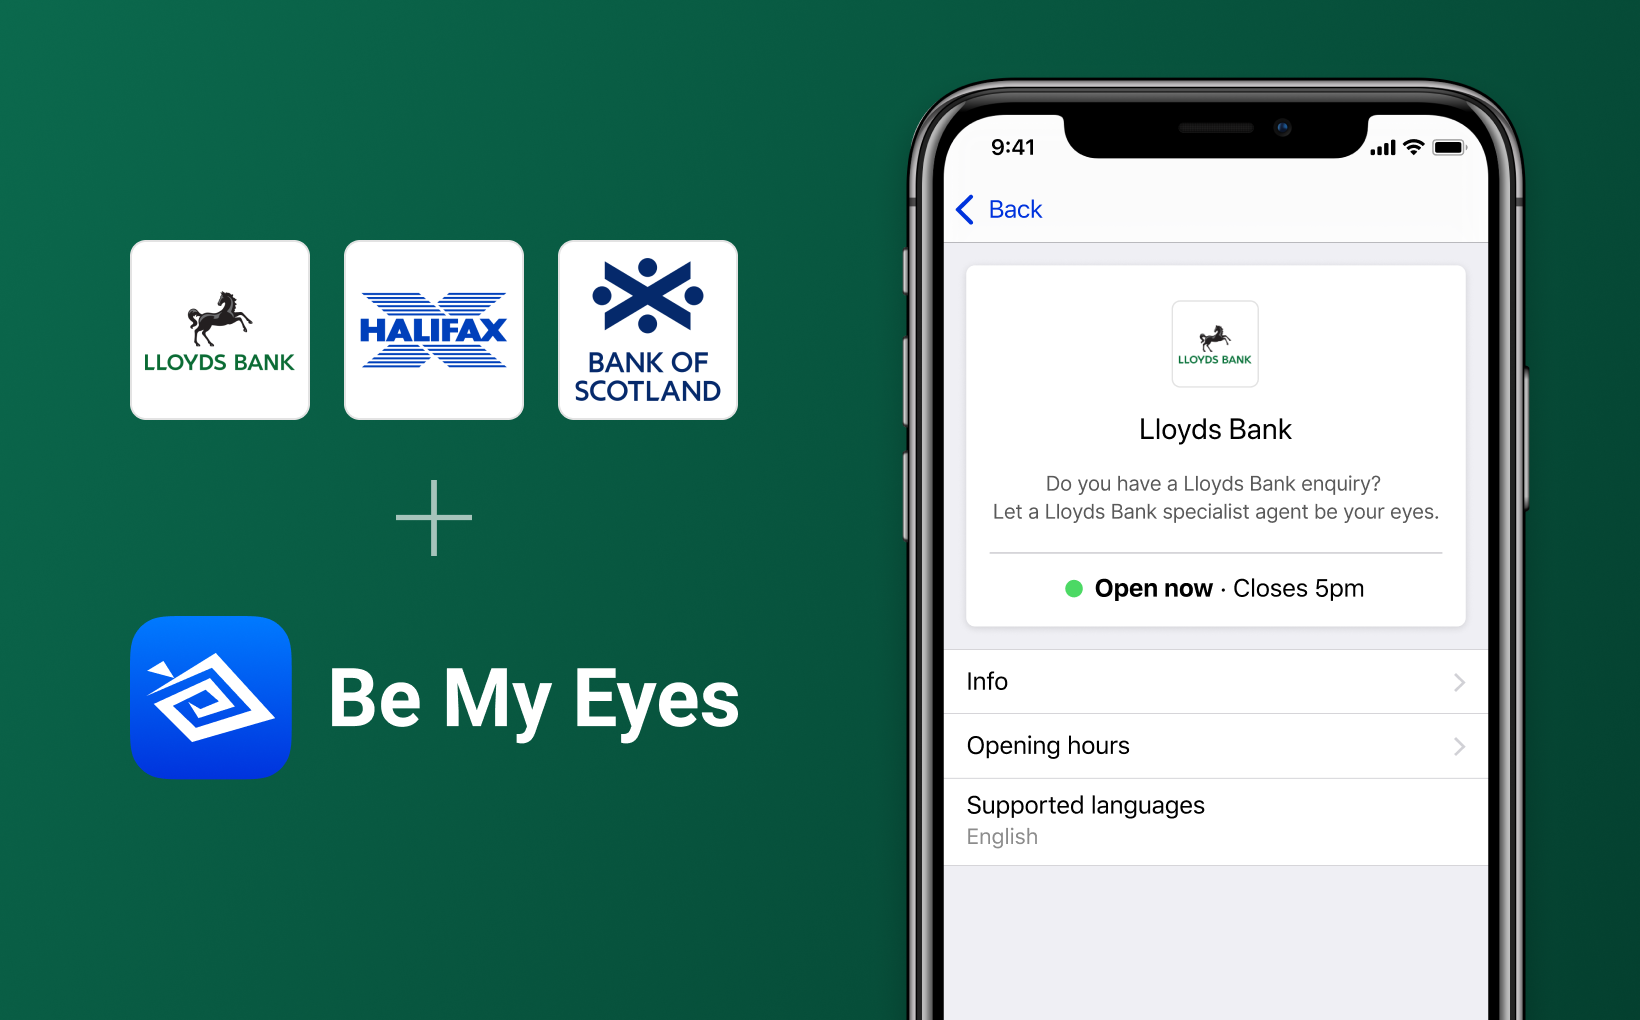 Smartphone showing Lloyds Bank's profile on the Specialised Help platform, along with the logos of Lloyds Bank, Halifax and Bank of Scotland + Be My Eyes.